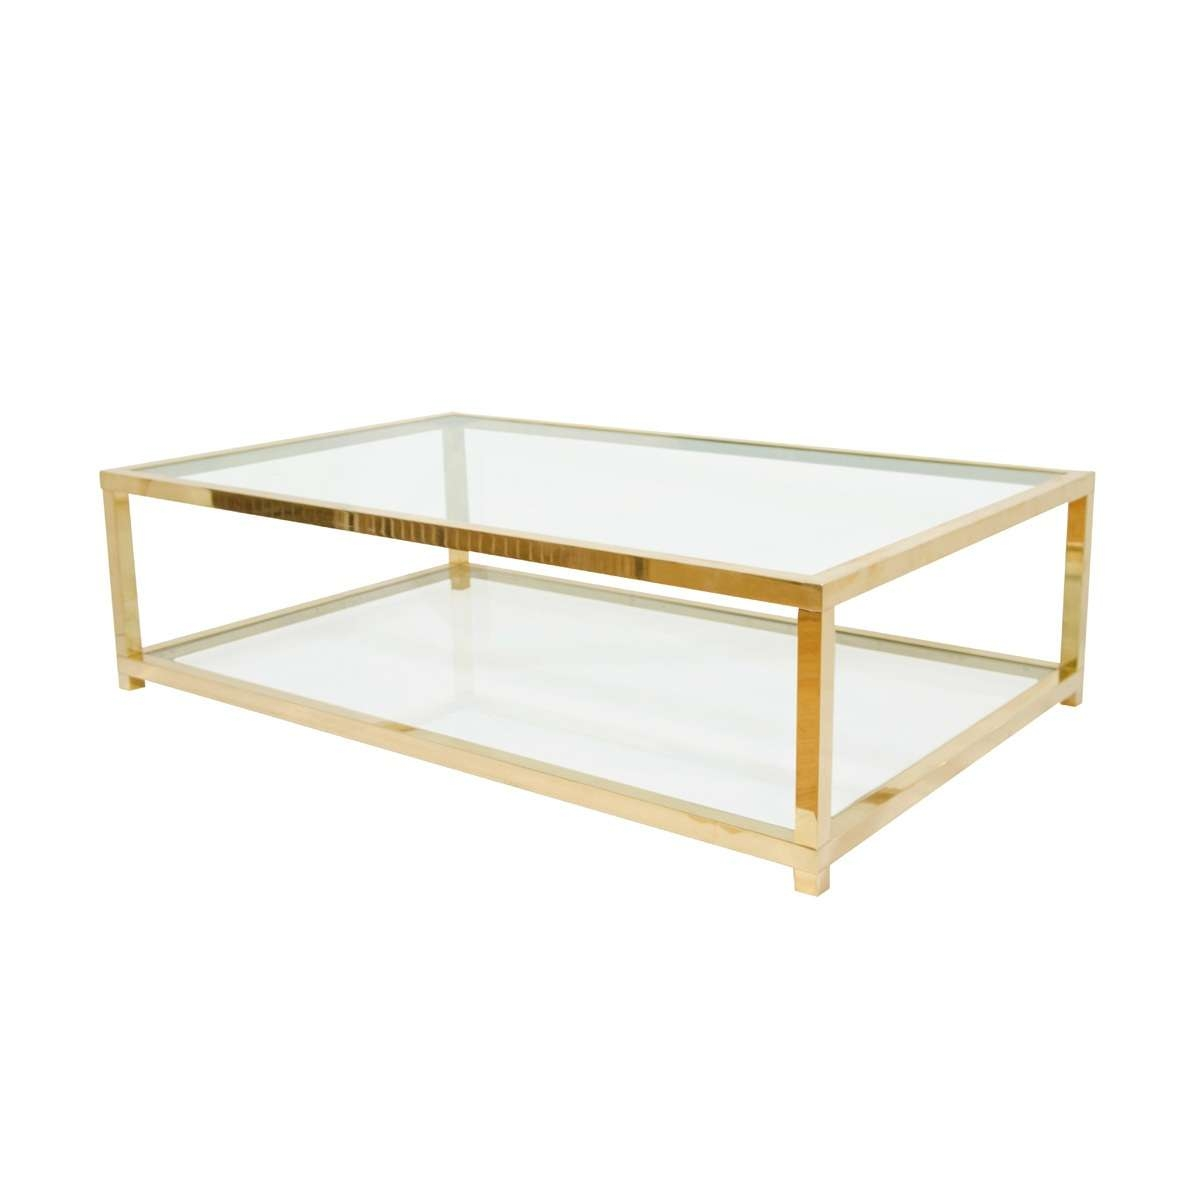 Enchanting Brass Glass Coffee Tables Toronto – Antique Brass Glass Intended For Current Vintage Glass Coffee Tables (View 6 of 20)